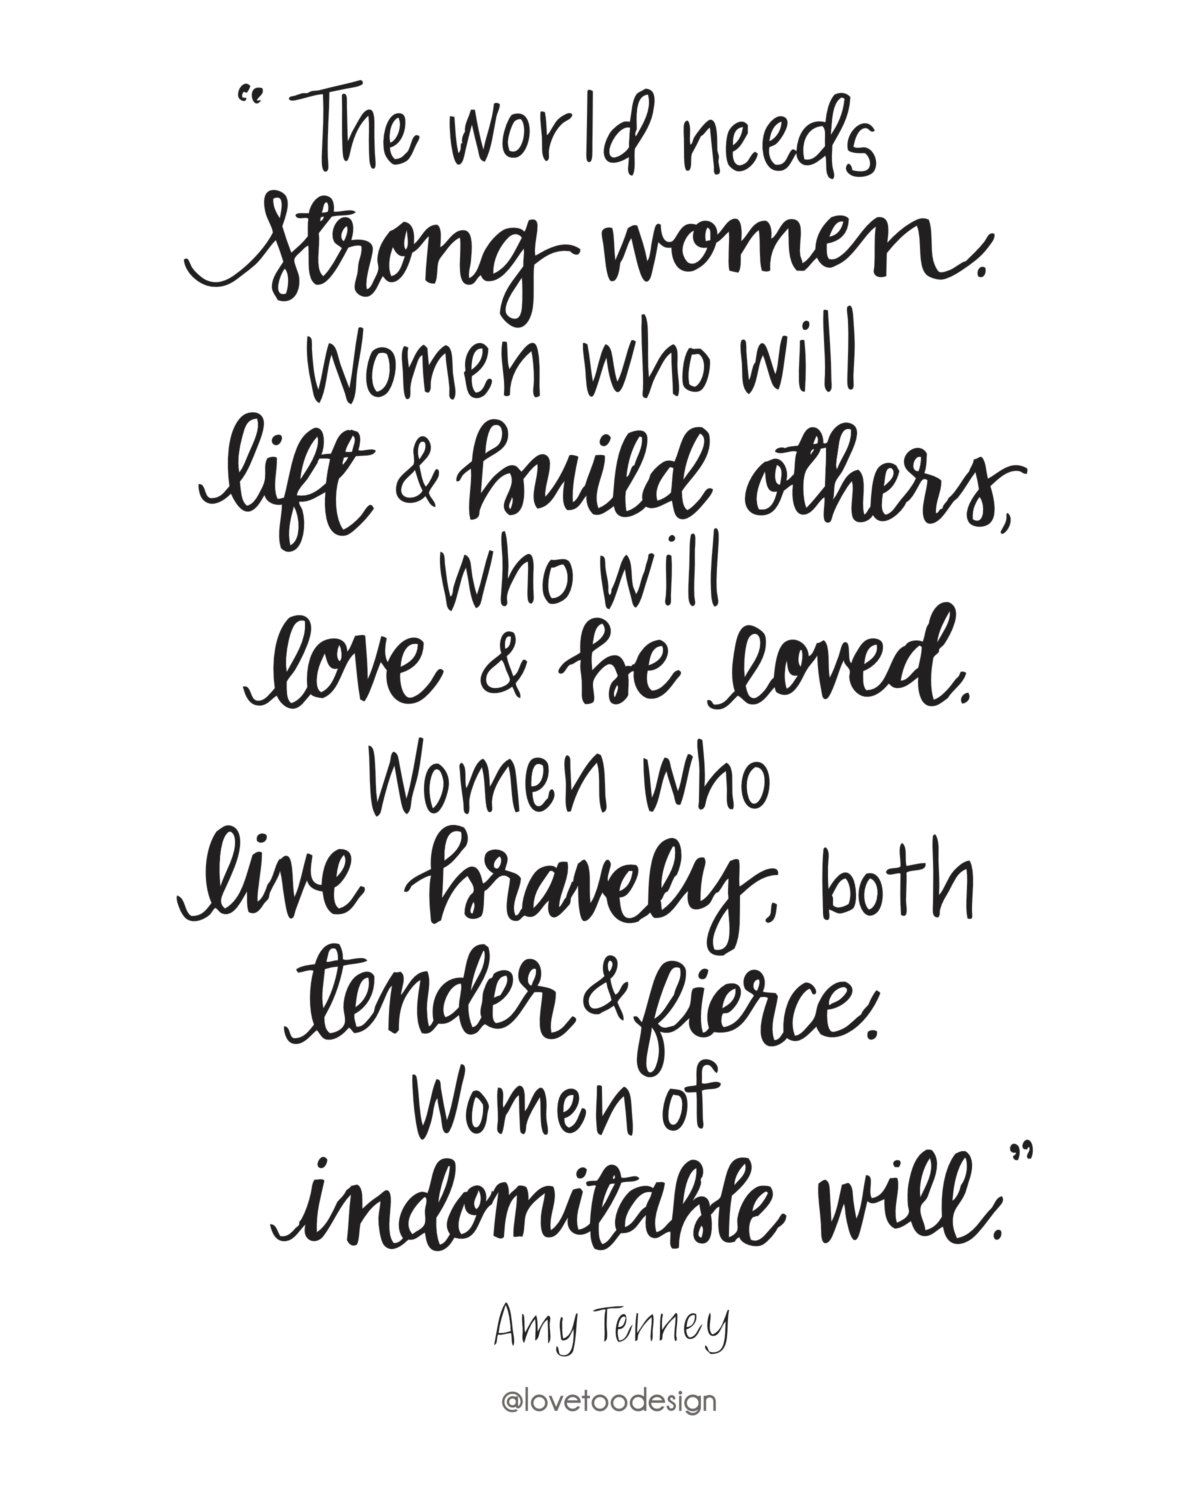 Quotes About Strong Black Woman The World Need Strong Womenwomen Who Will Lift And Build Others